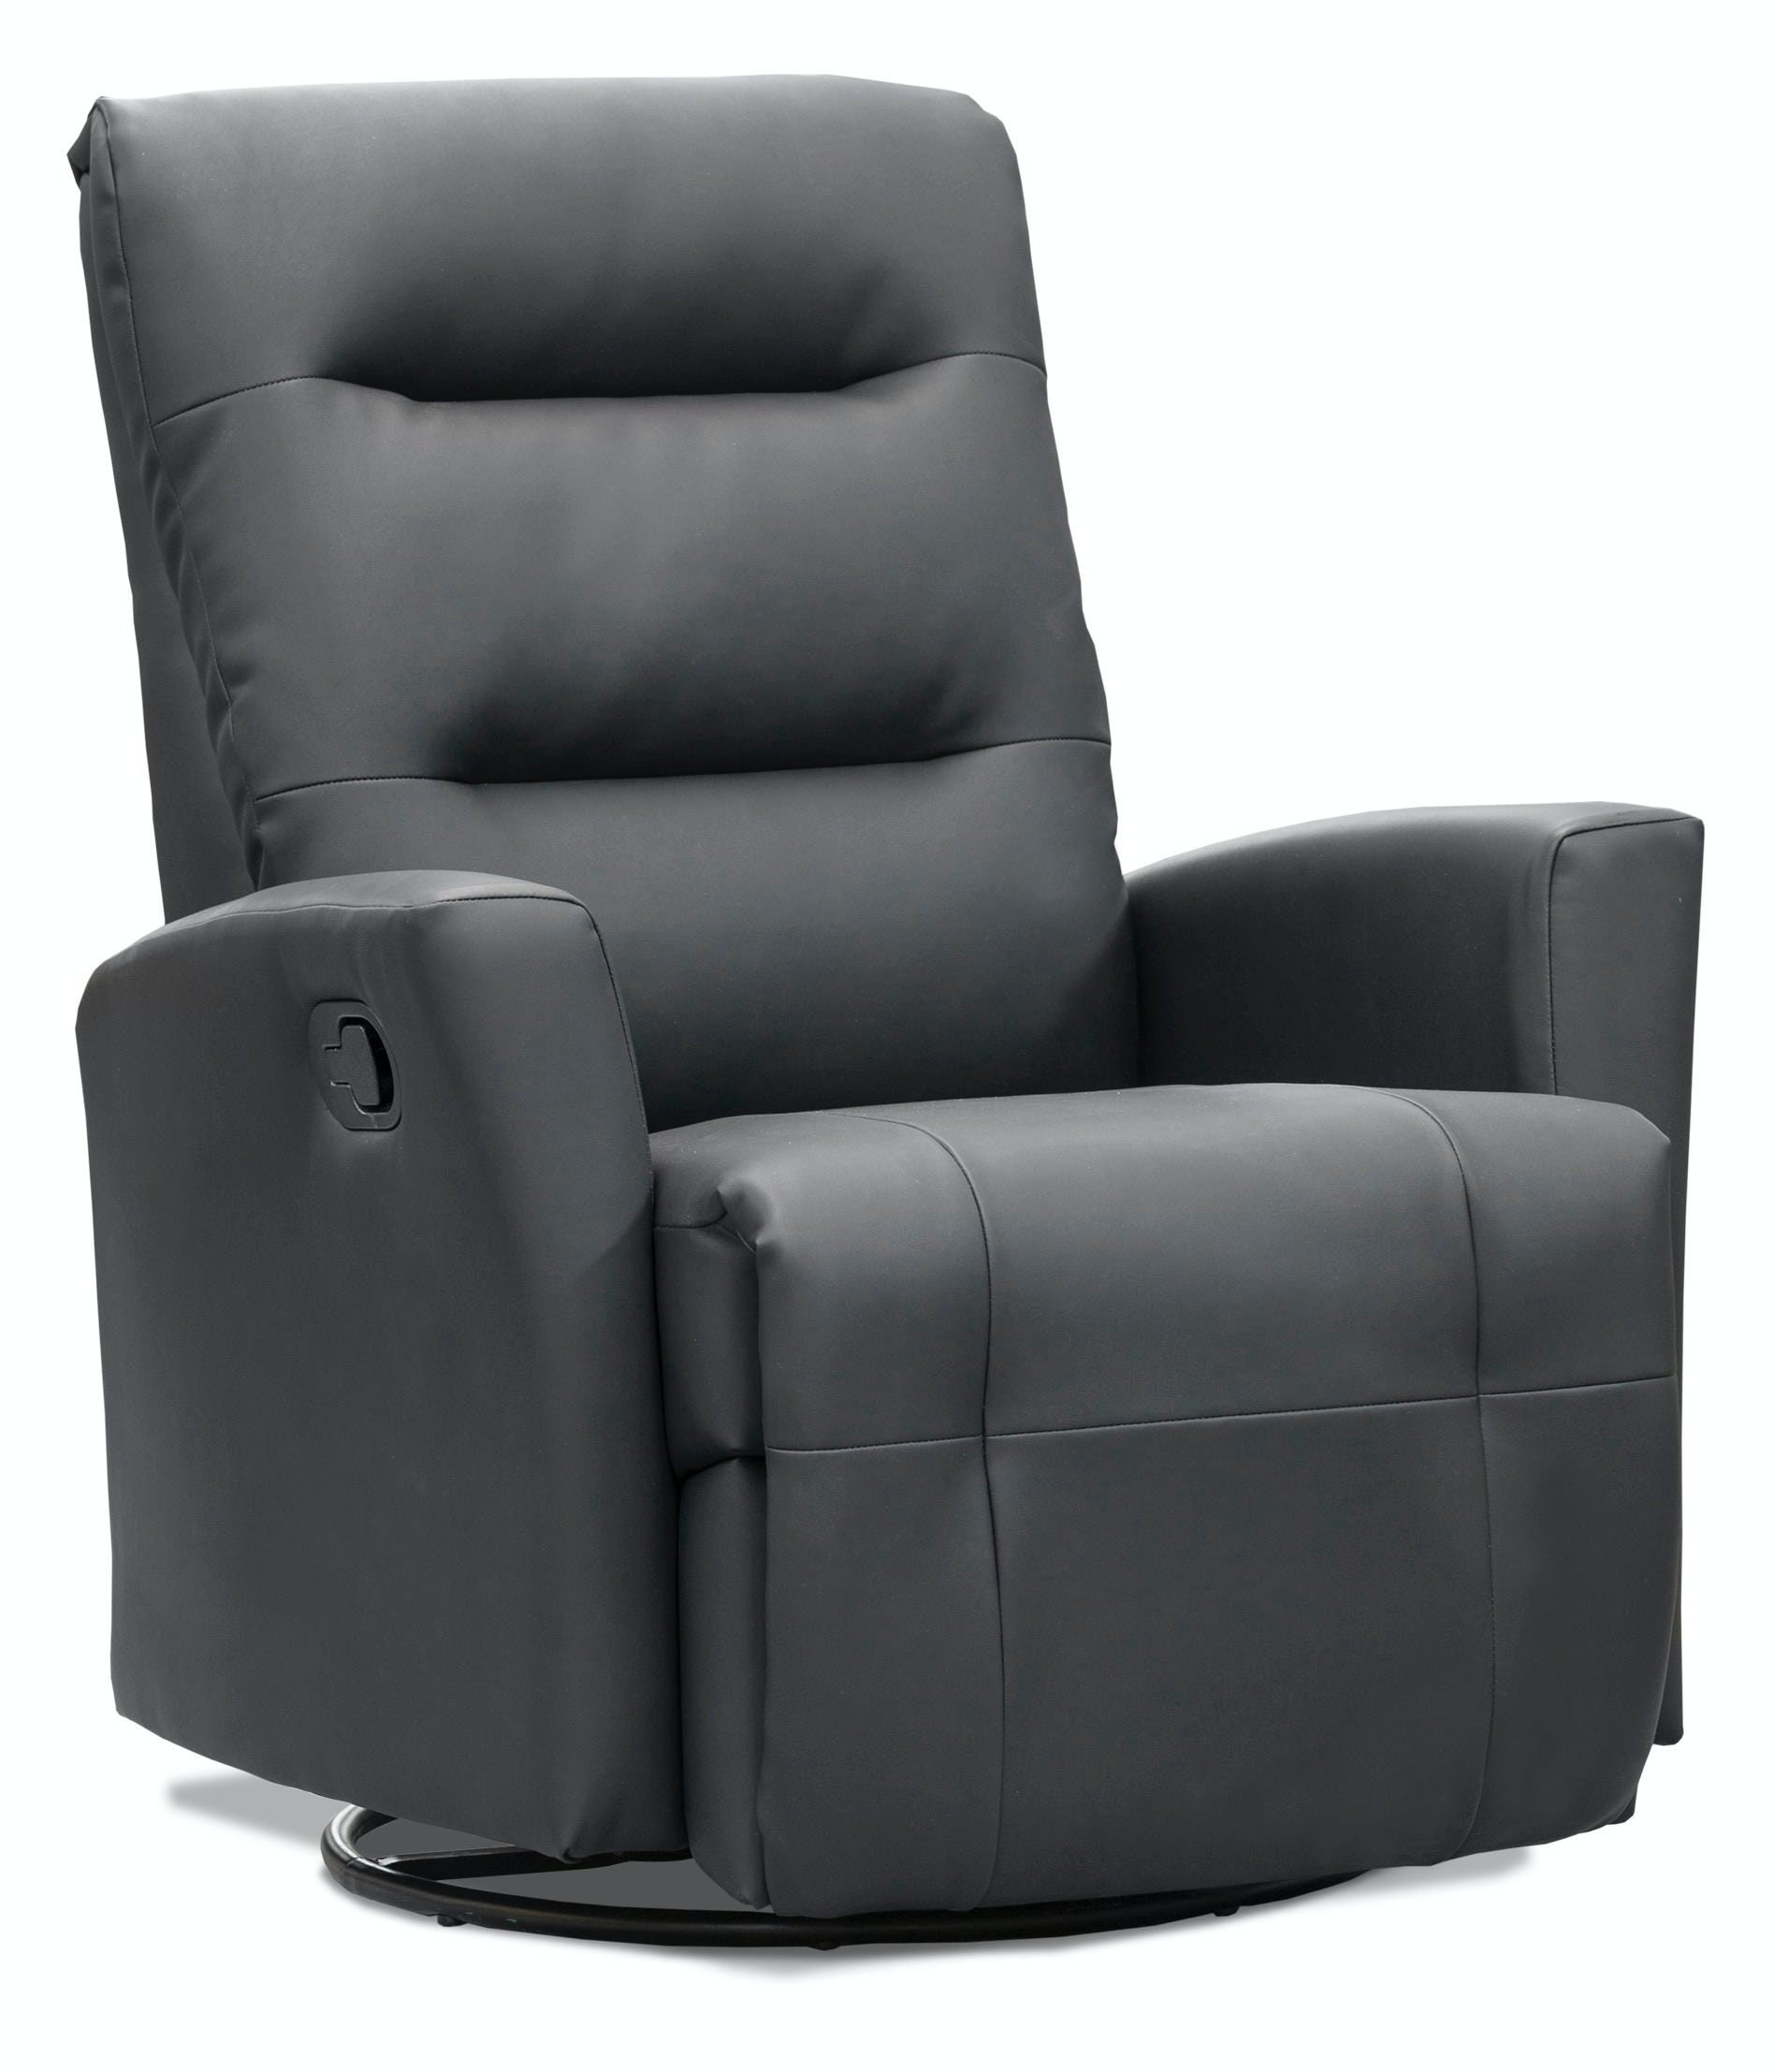 Elran Swivel Glider Recliner   Power Pack ERL0902 SG POWP